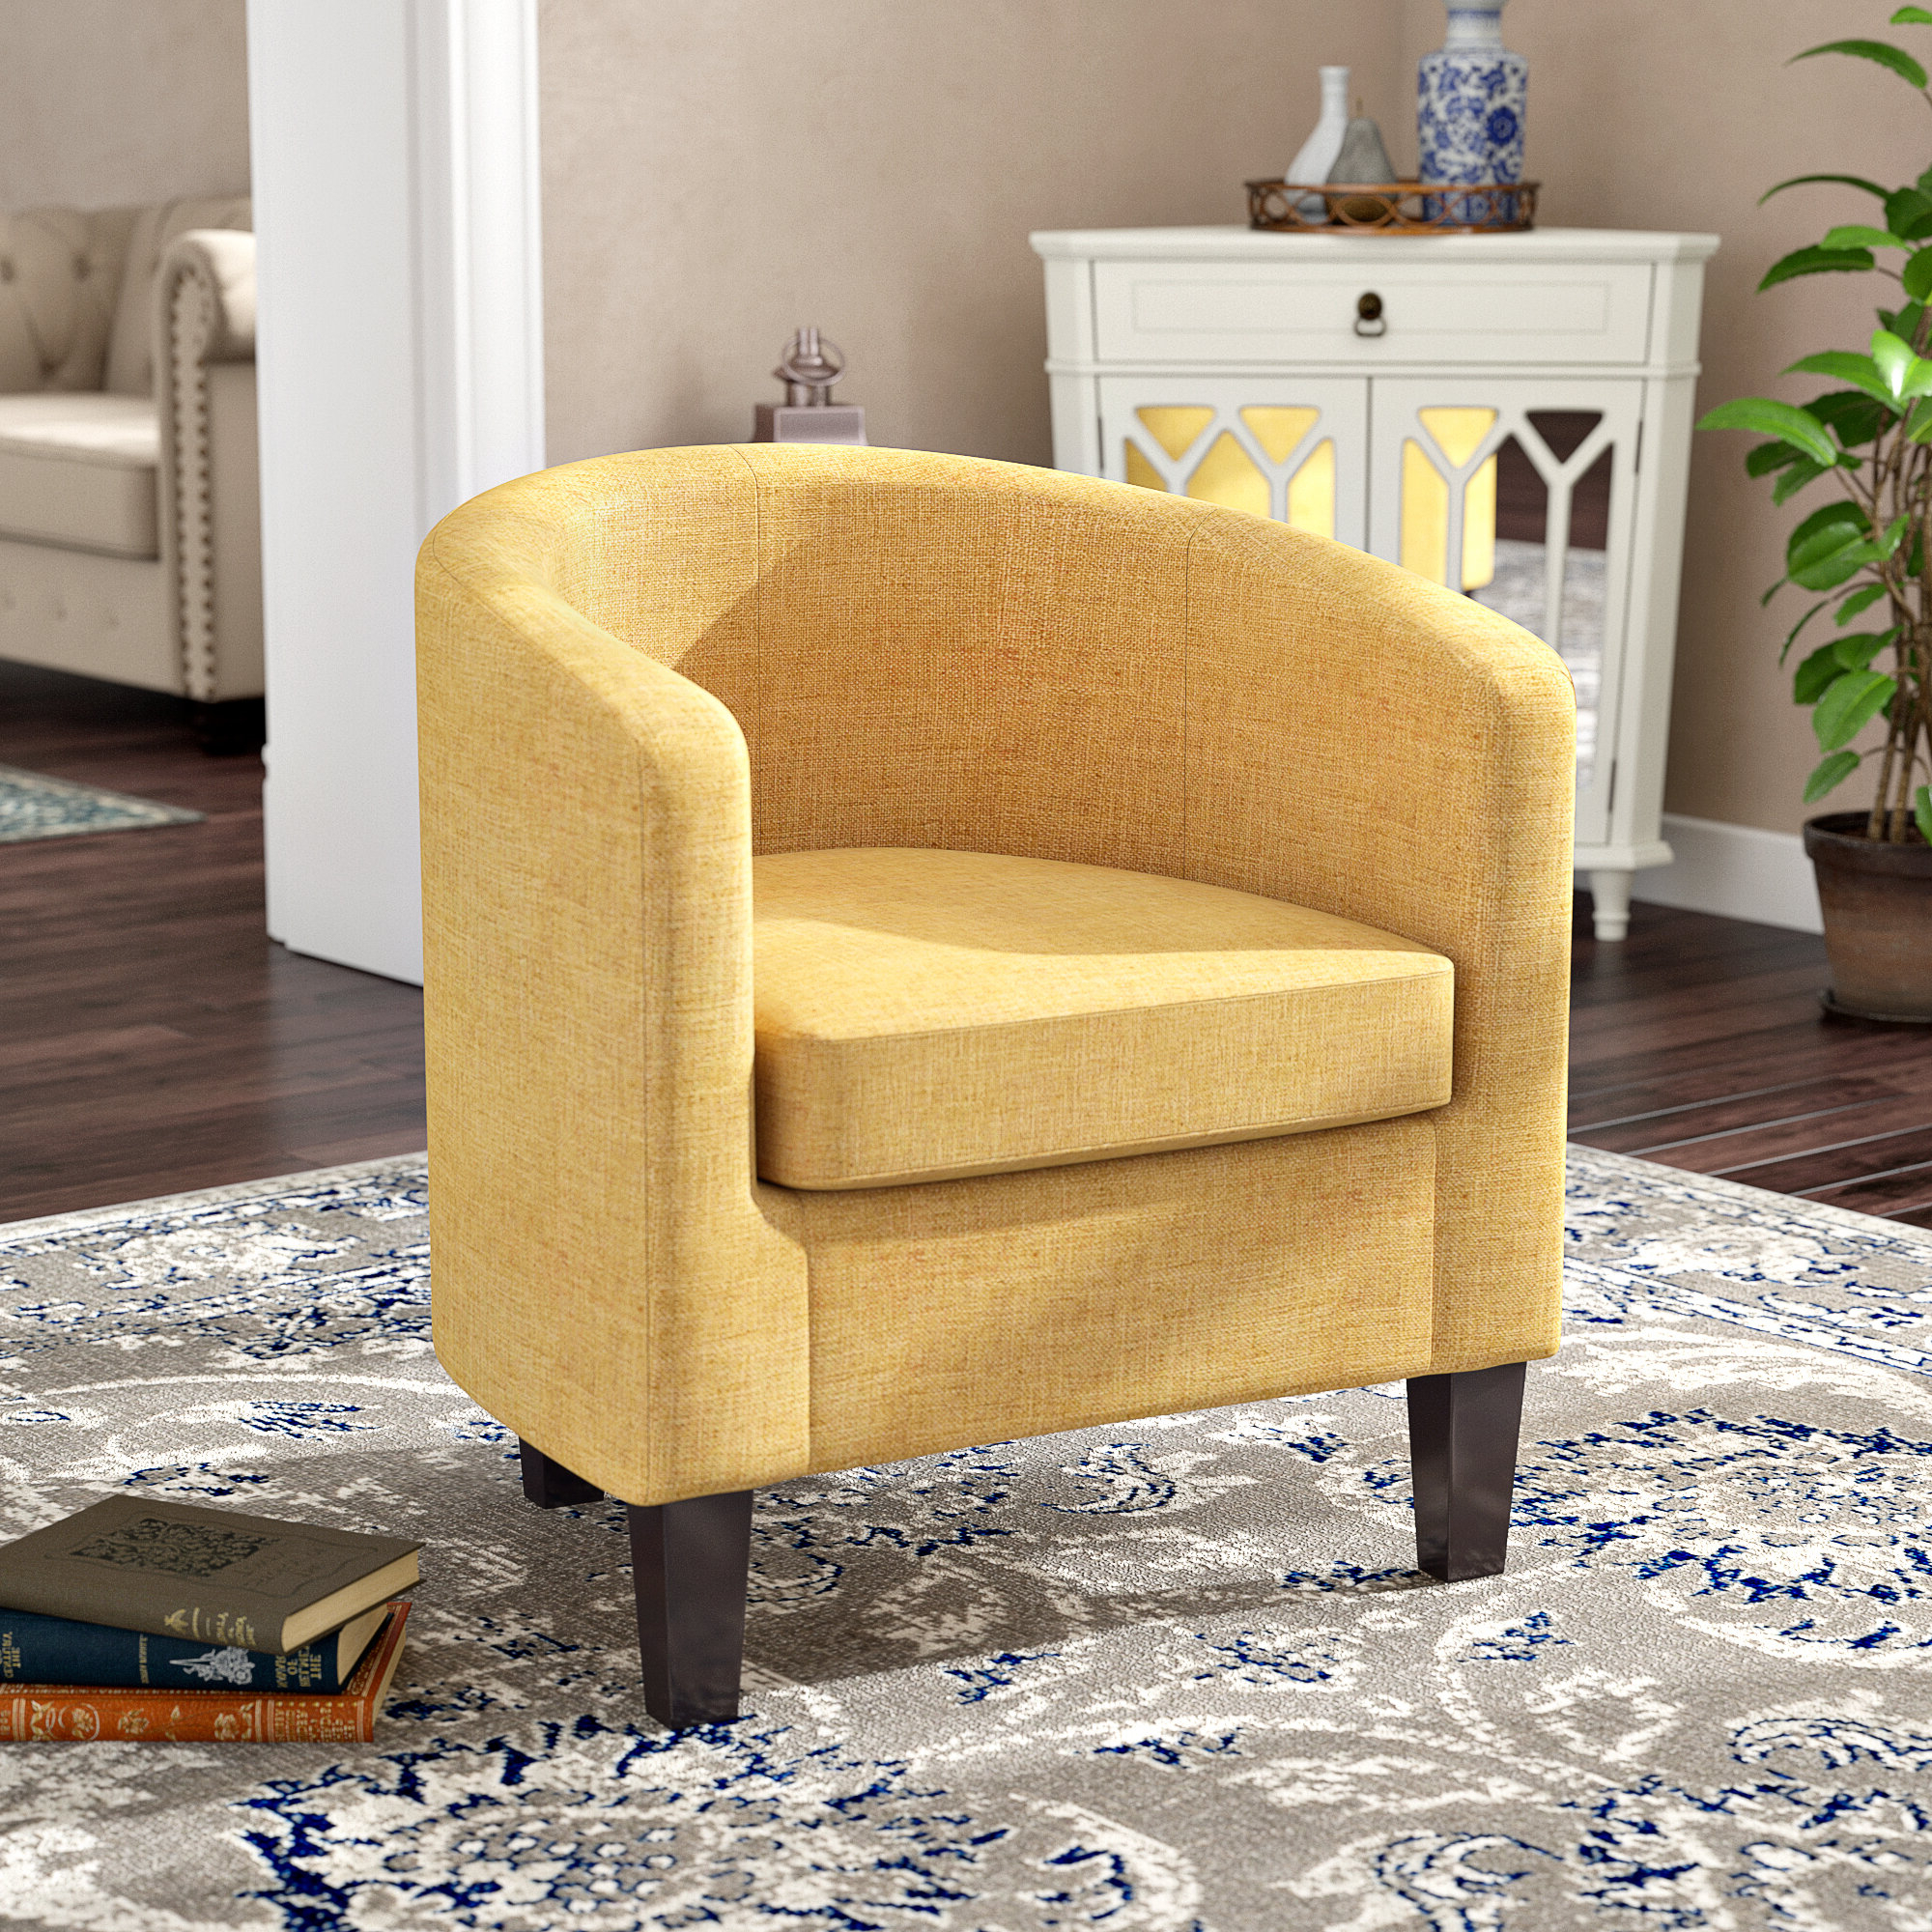 2019 Adelia Barrel Chair Intended For Danow Polyester Barrel Chairs (View 2 of 20)